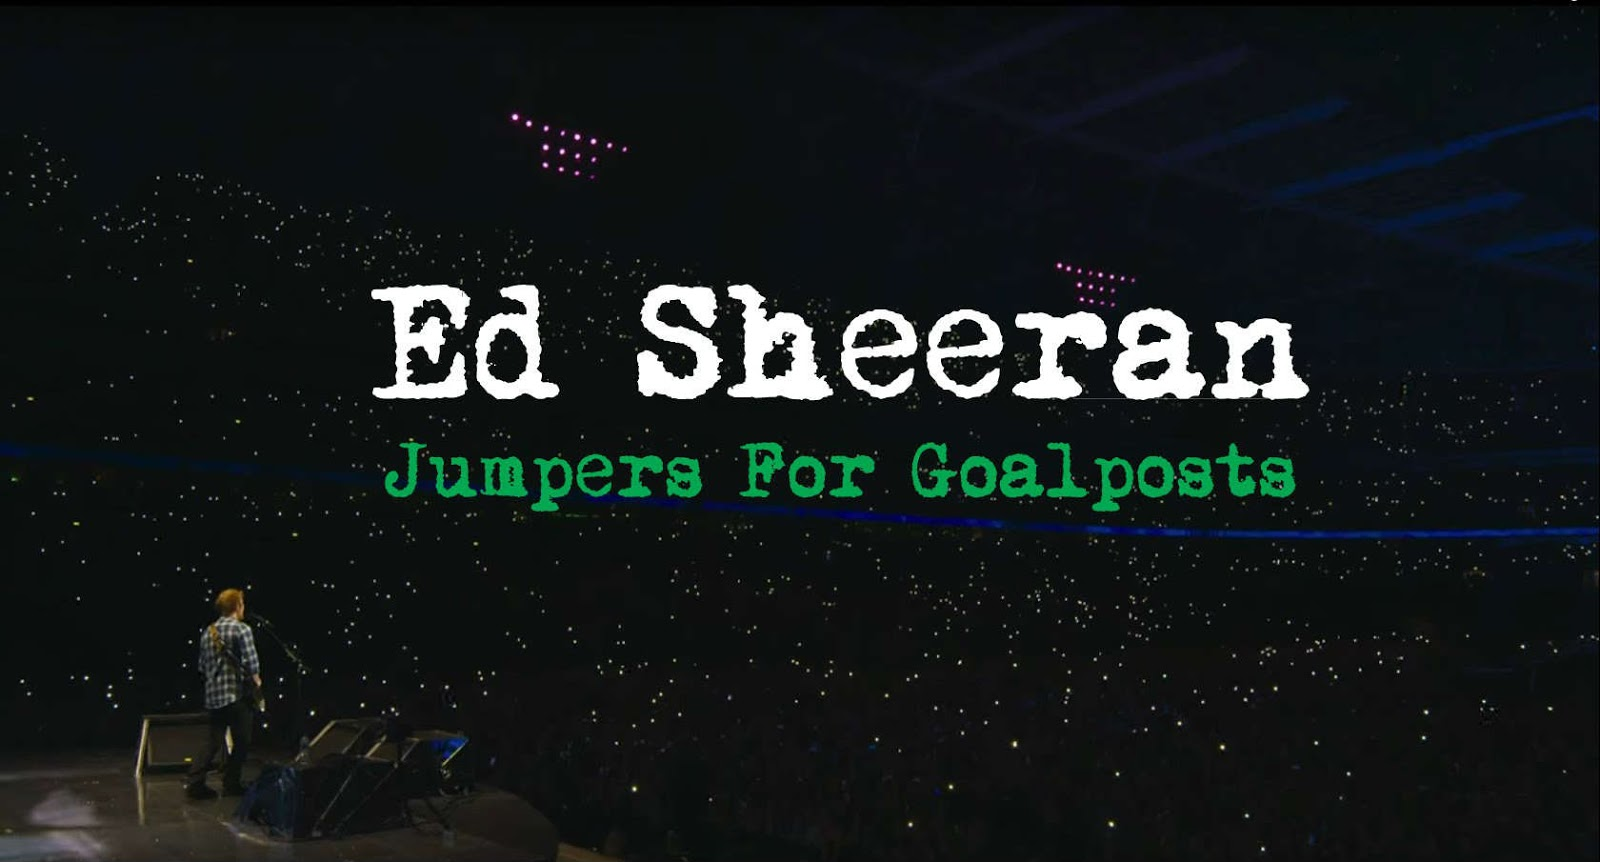 ed sheeran jumpers for goalposts